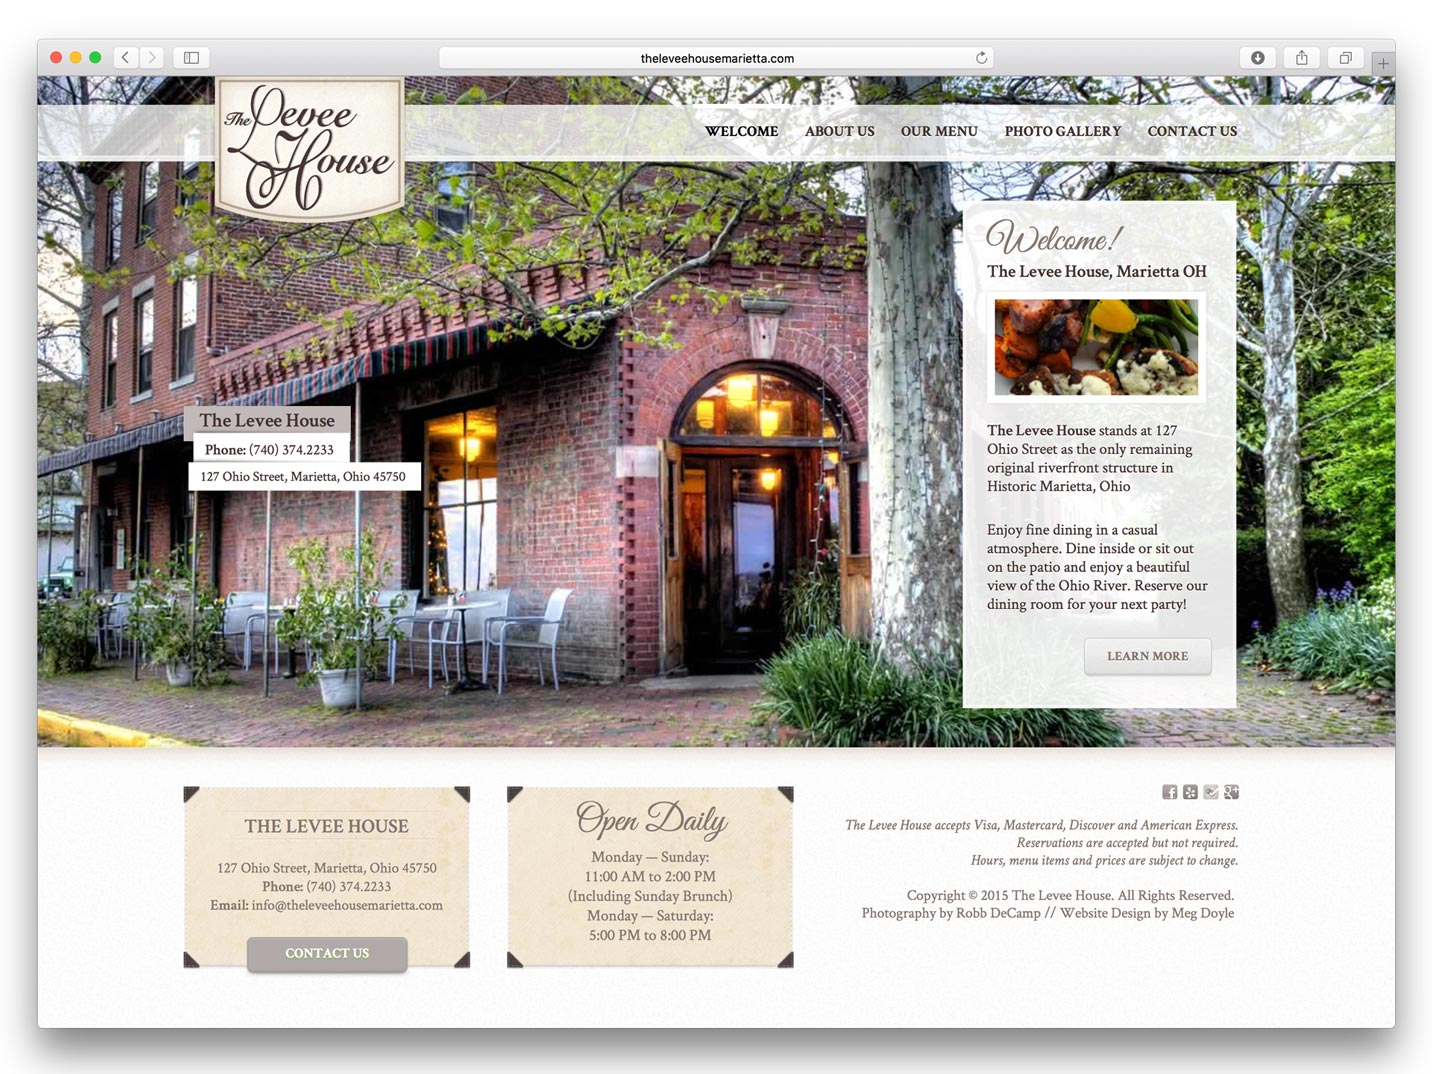 The Levee House Website